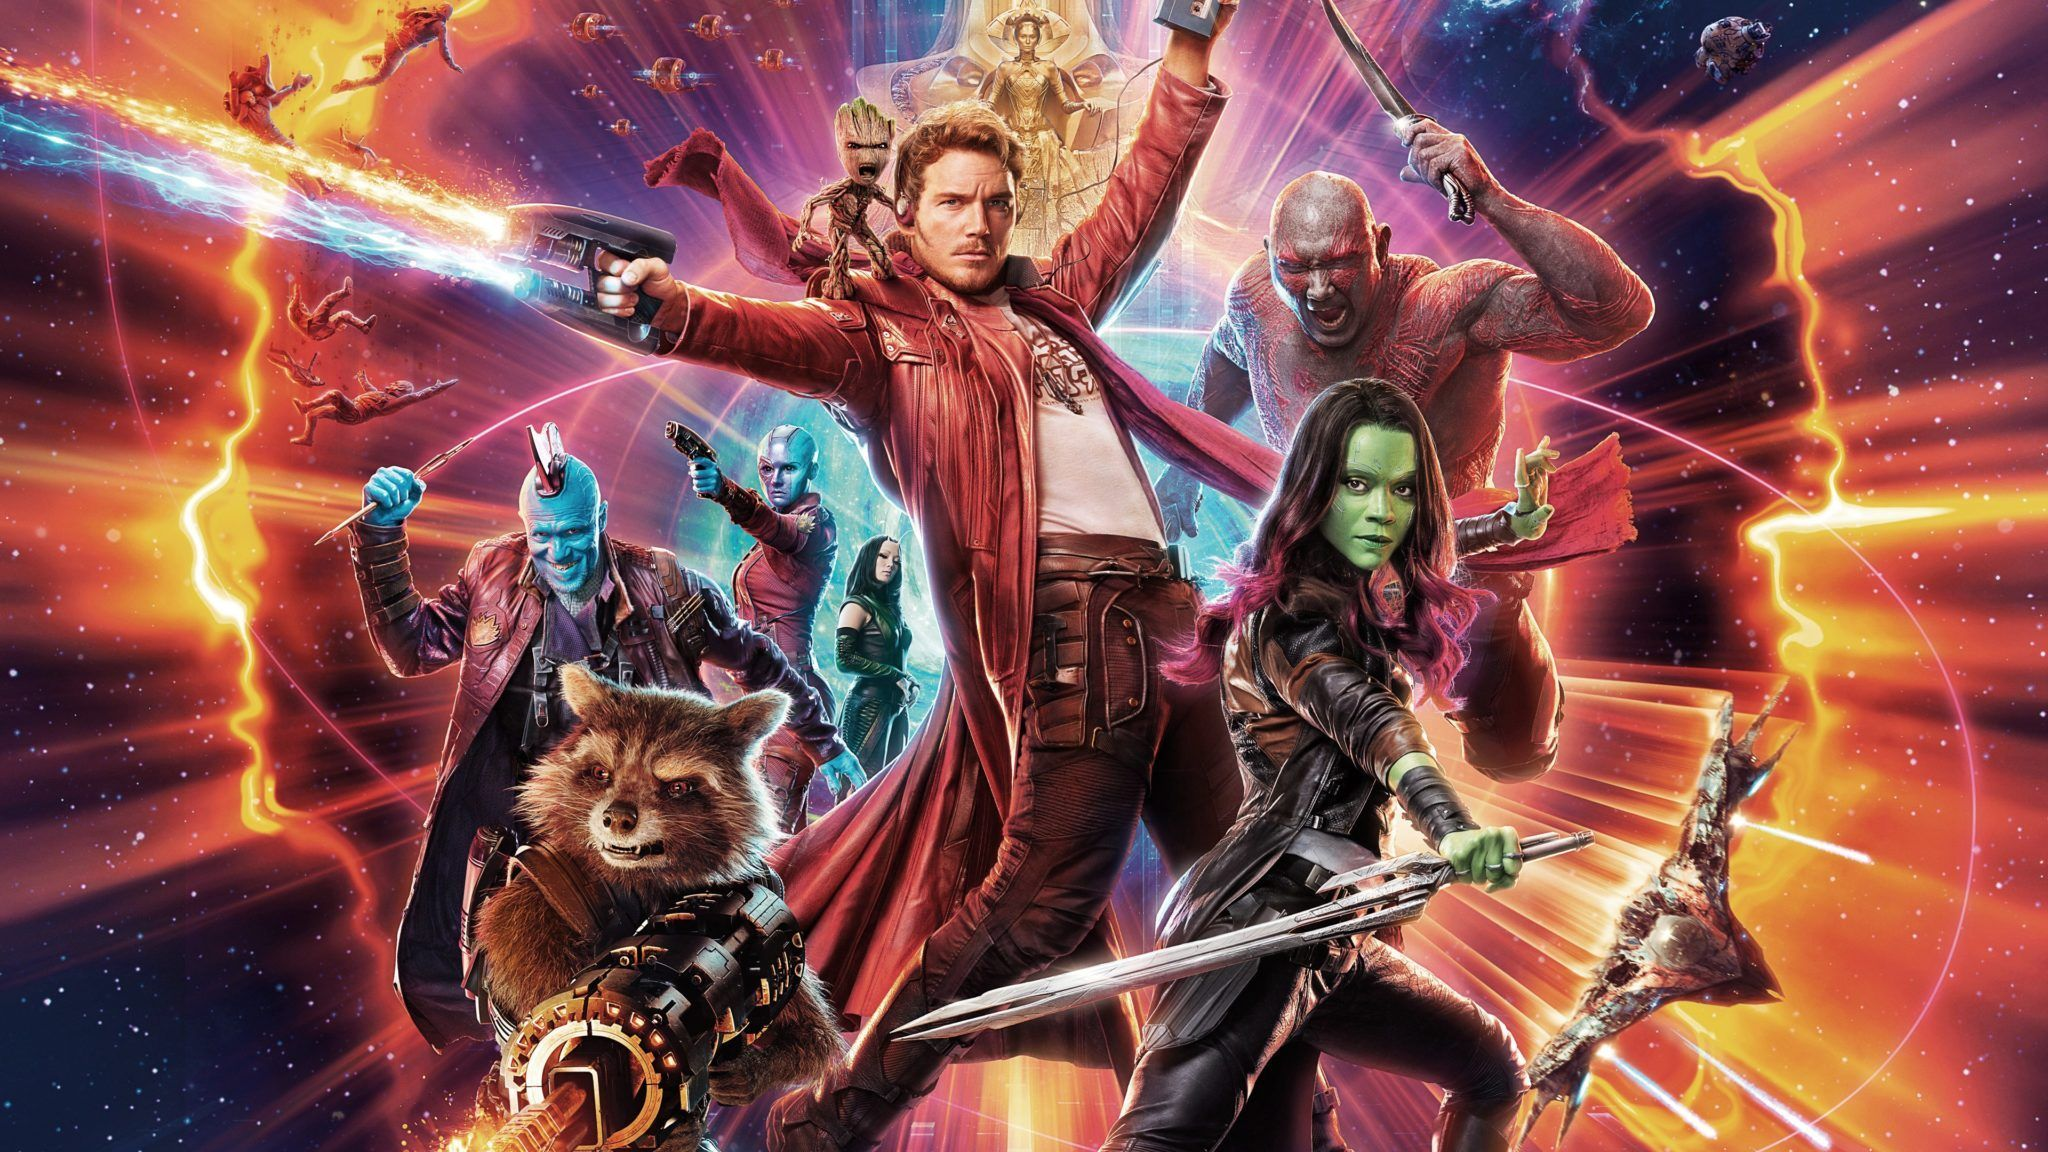 Guardians Of The Galaxy 2 4k 2017 Hd Wallpapers 2048x1152 Guardians Of The Galaxy Vol 2 Guardians Of The Galaxy Galaxy Vol 2